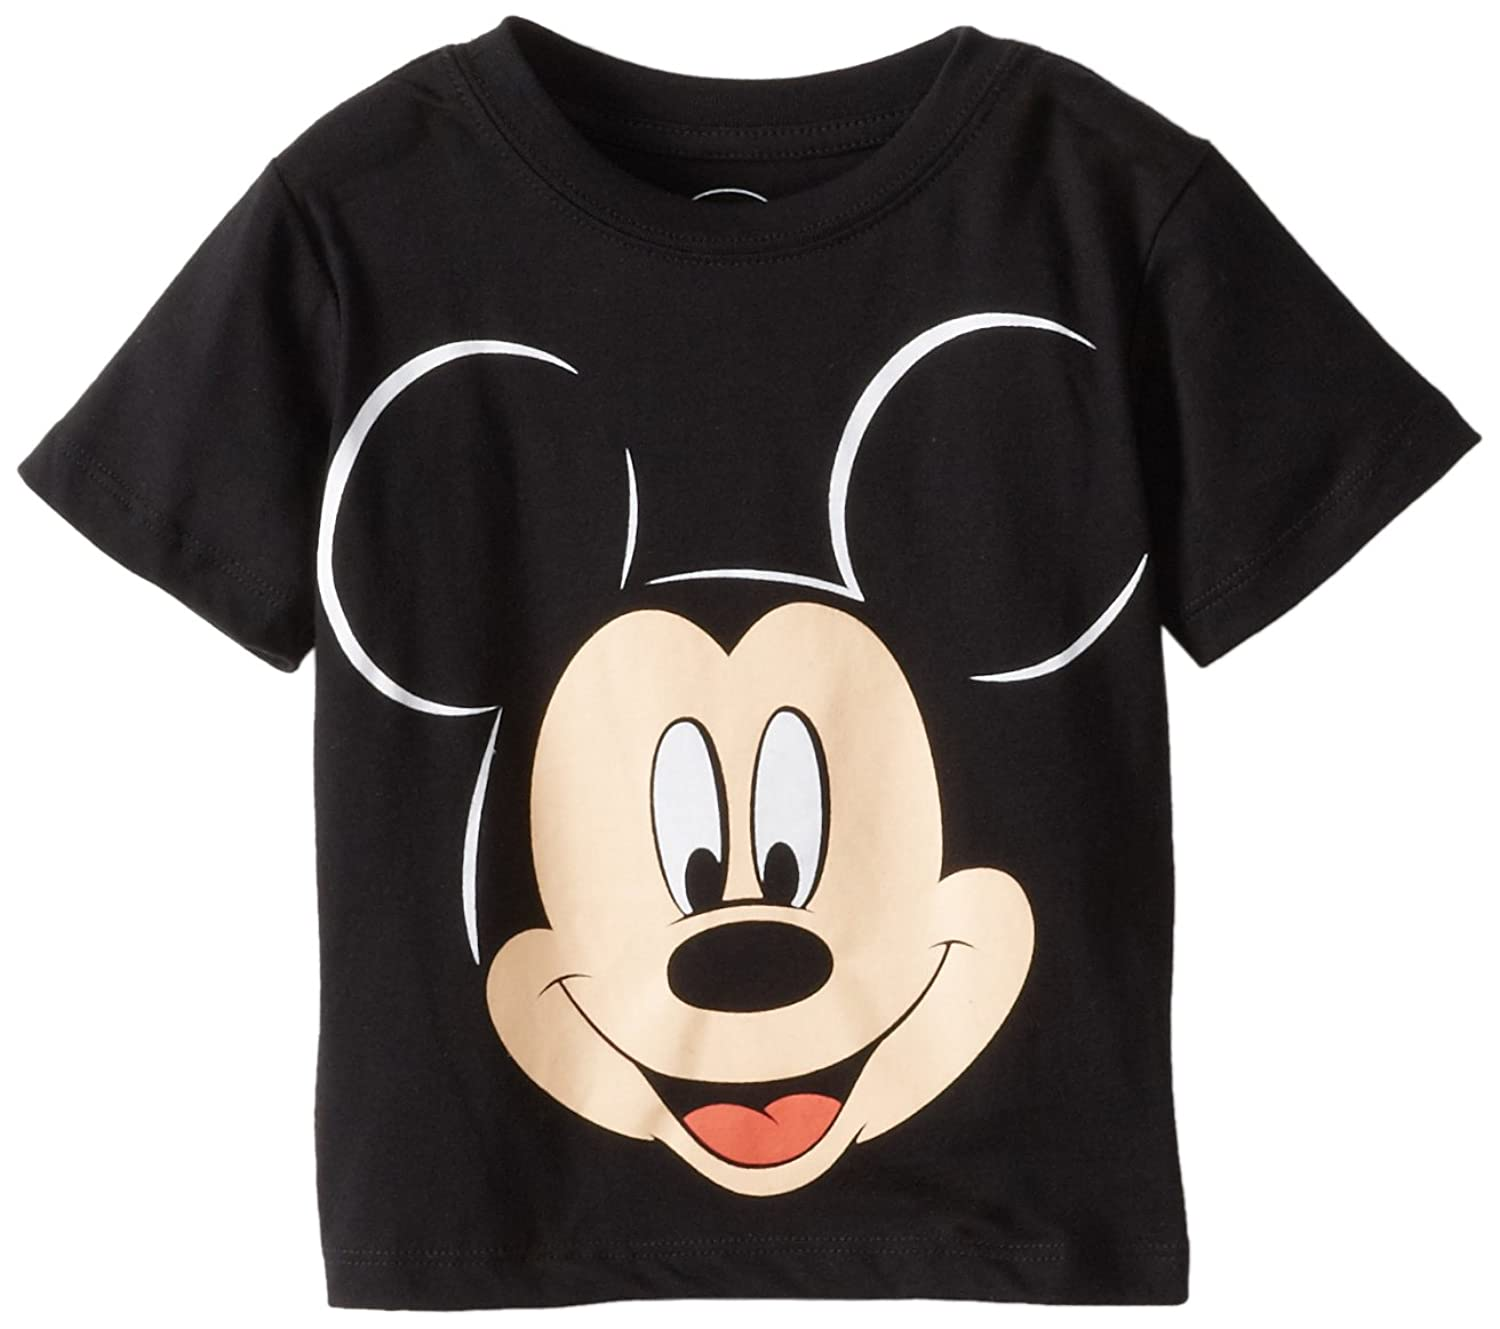 Amazon.com: Disney Mickey Mouse Boys' Face T-Shirt: Fashion T ...